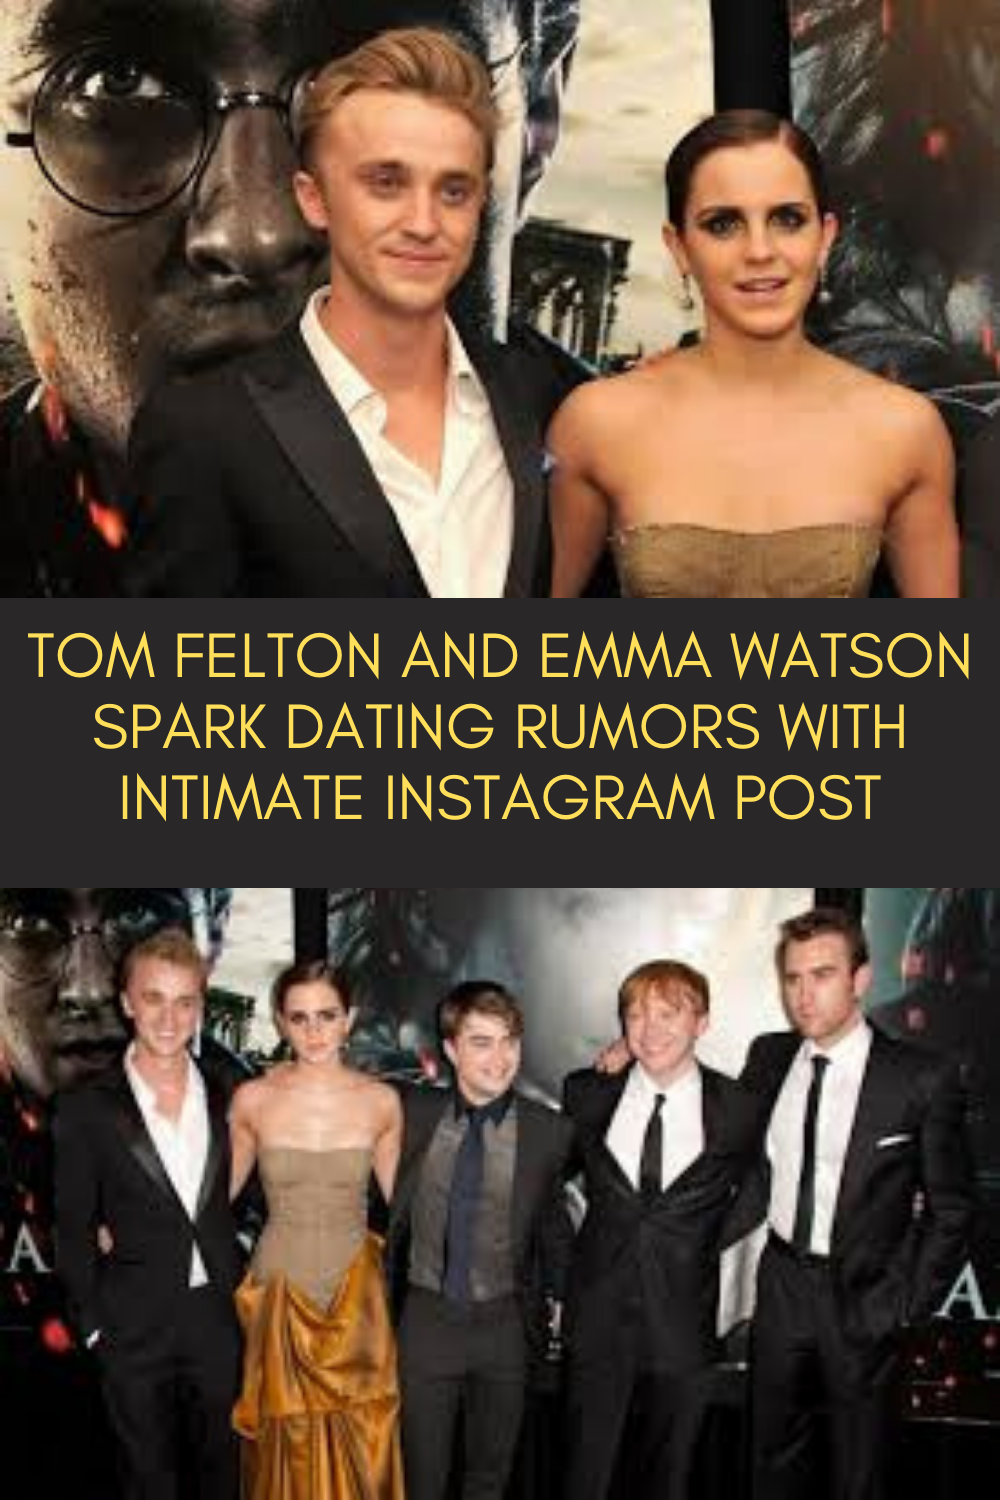 TOM FELTON AND EMMA WATSON SPARK DATING RUMORS WITH